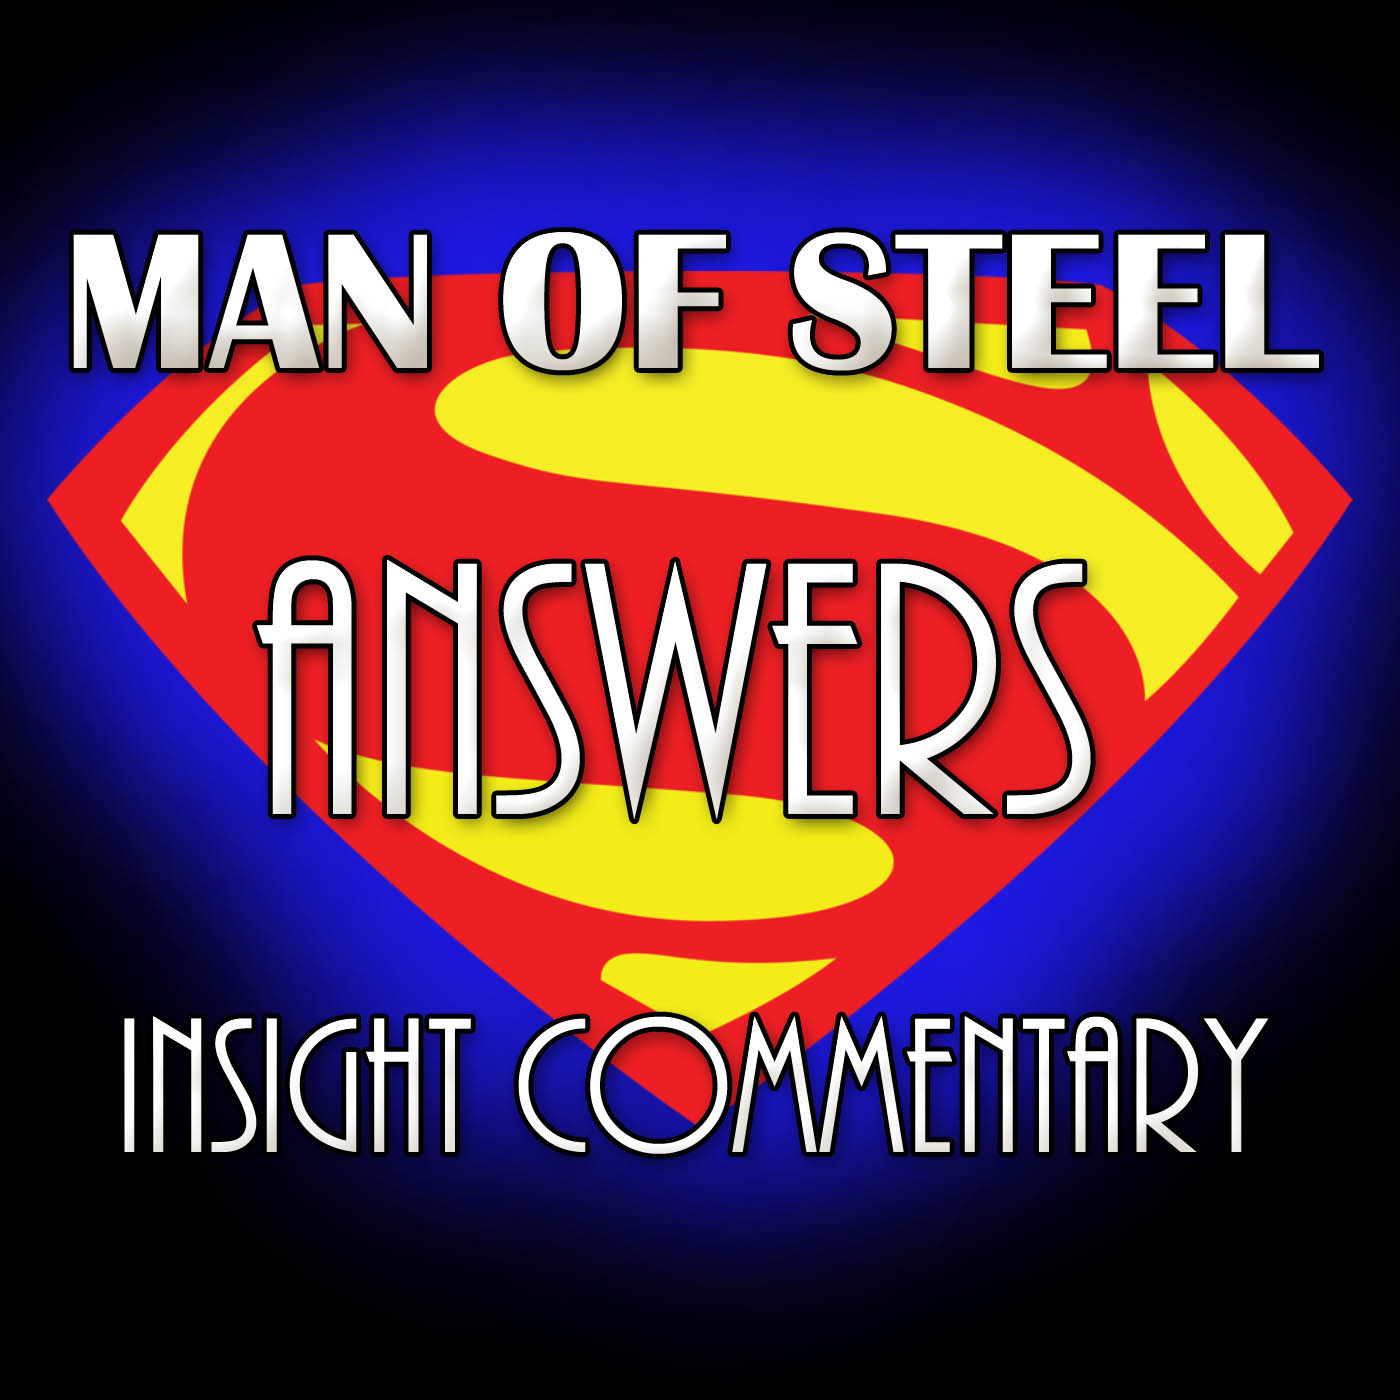 Man of Steel Answers Insight Commentary